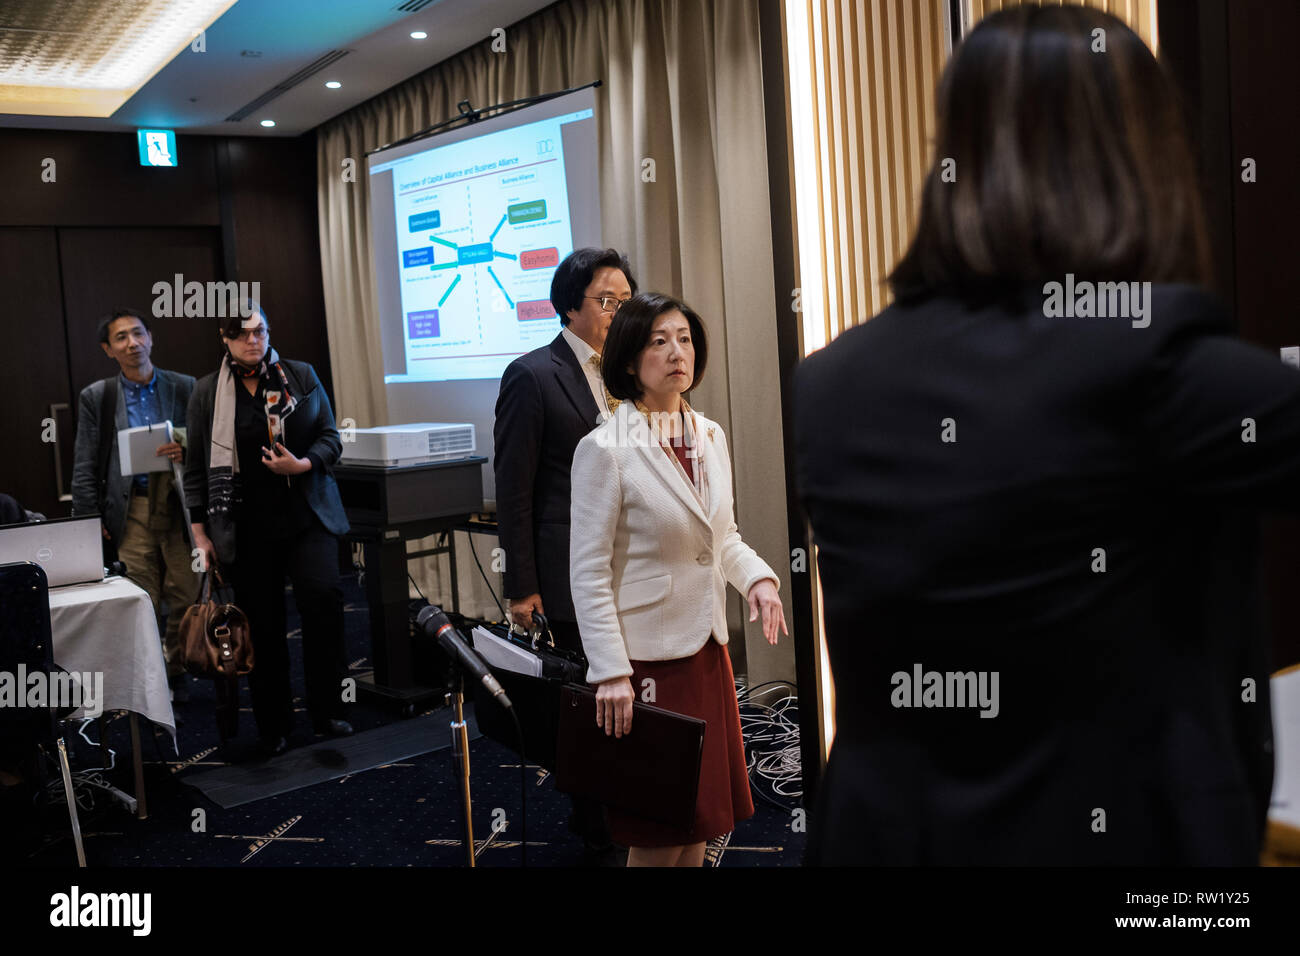 Otsuka Kagu president Kumiko Otsuka (C) arrives for a press conference at Foreign Press Club on March 04, 2019 in Tokyo Japan. Seeking for expension in Chinese market Kumiko Otsuka talks about an alliance with China's company called High-Lines. March 04, 2019 Credit: Nicolas Datiche/AFLO/Alamy Live News Stock Photo